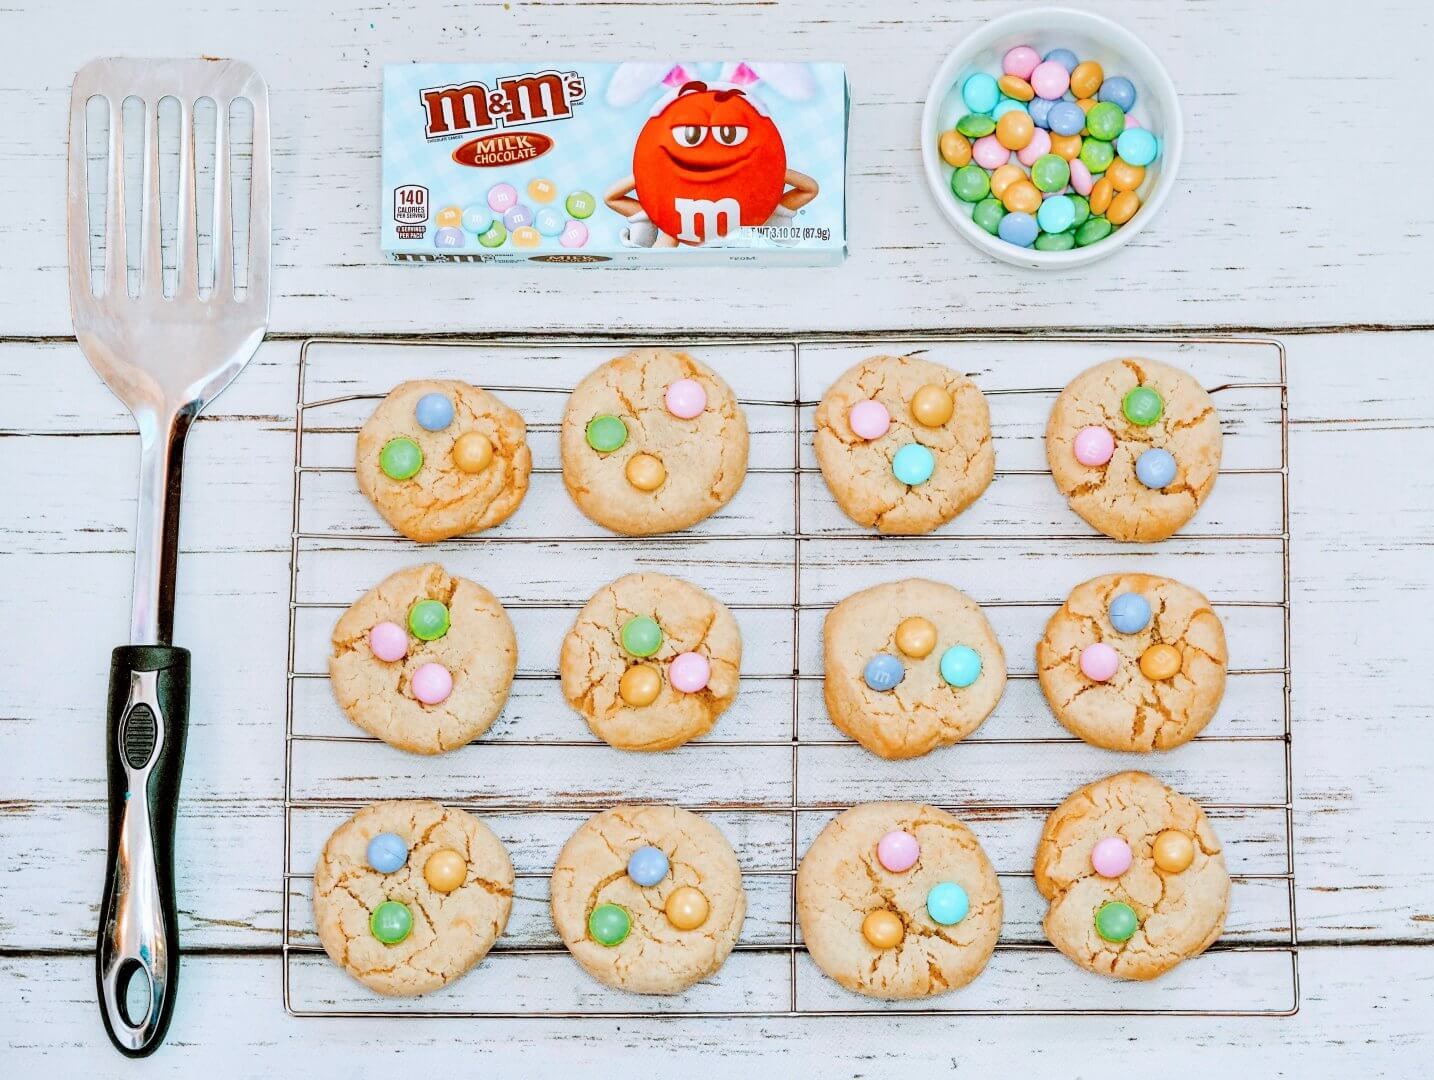 Decorating Sugar Cookies with Chocolate Candies on Cooling Rack